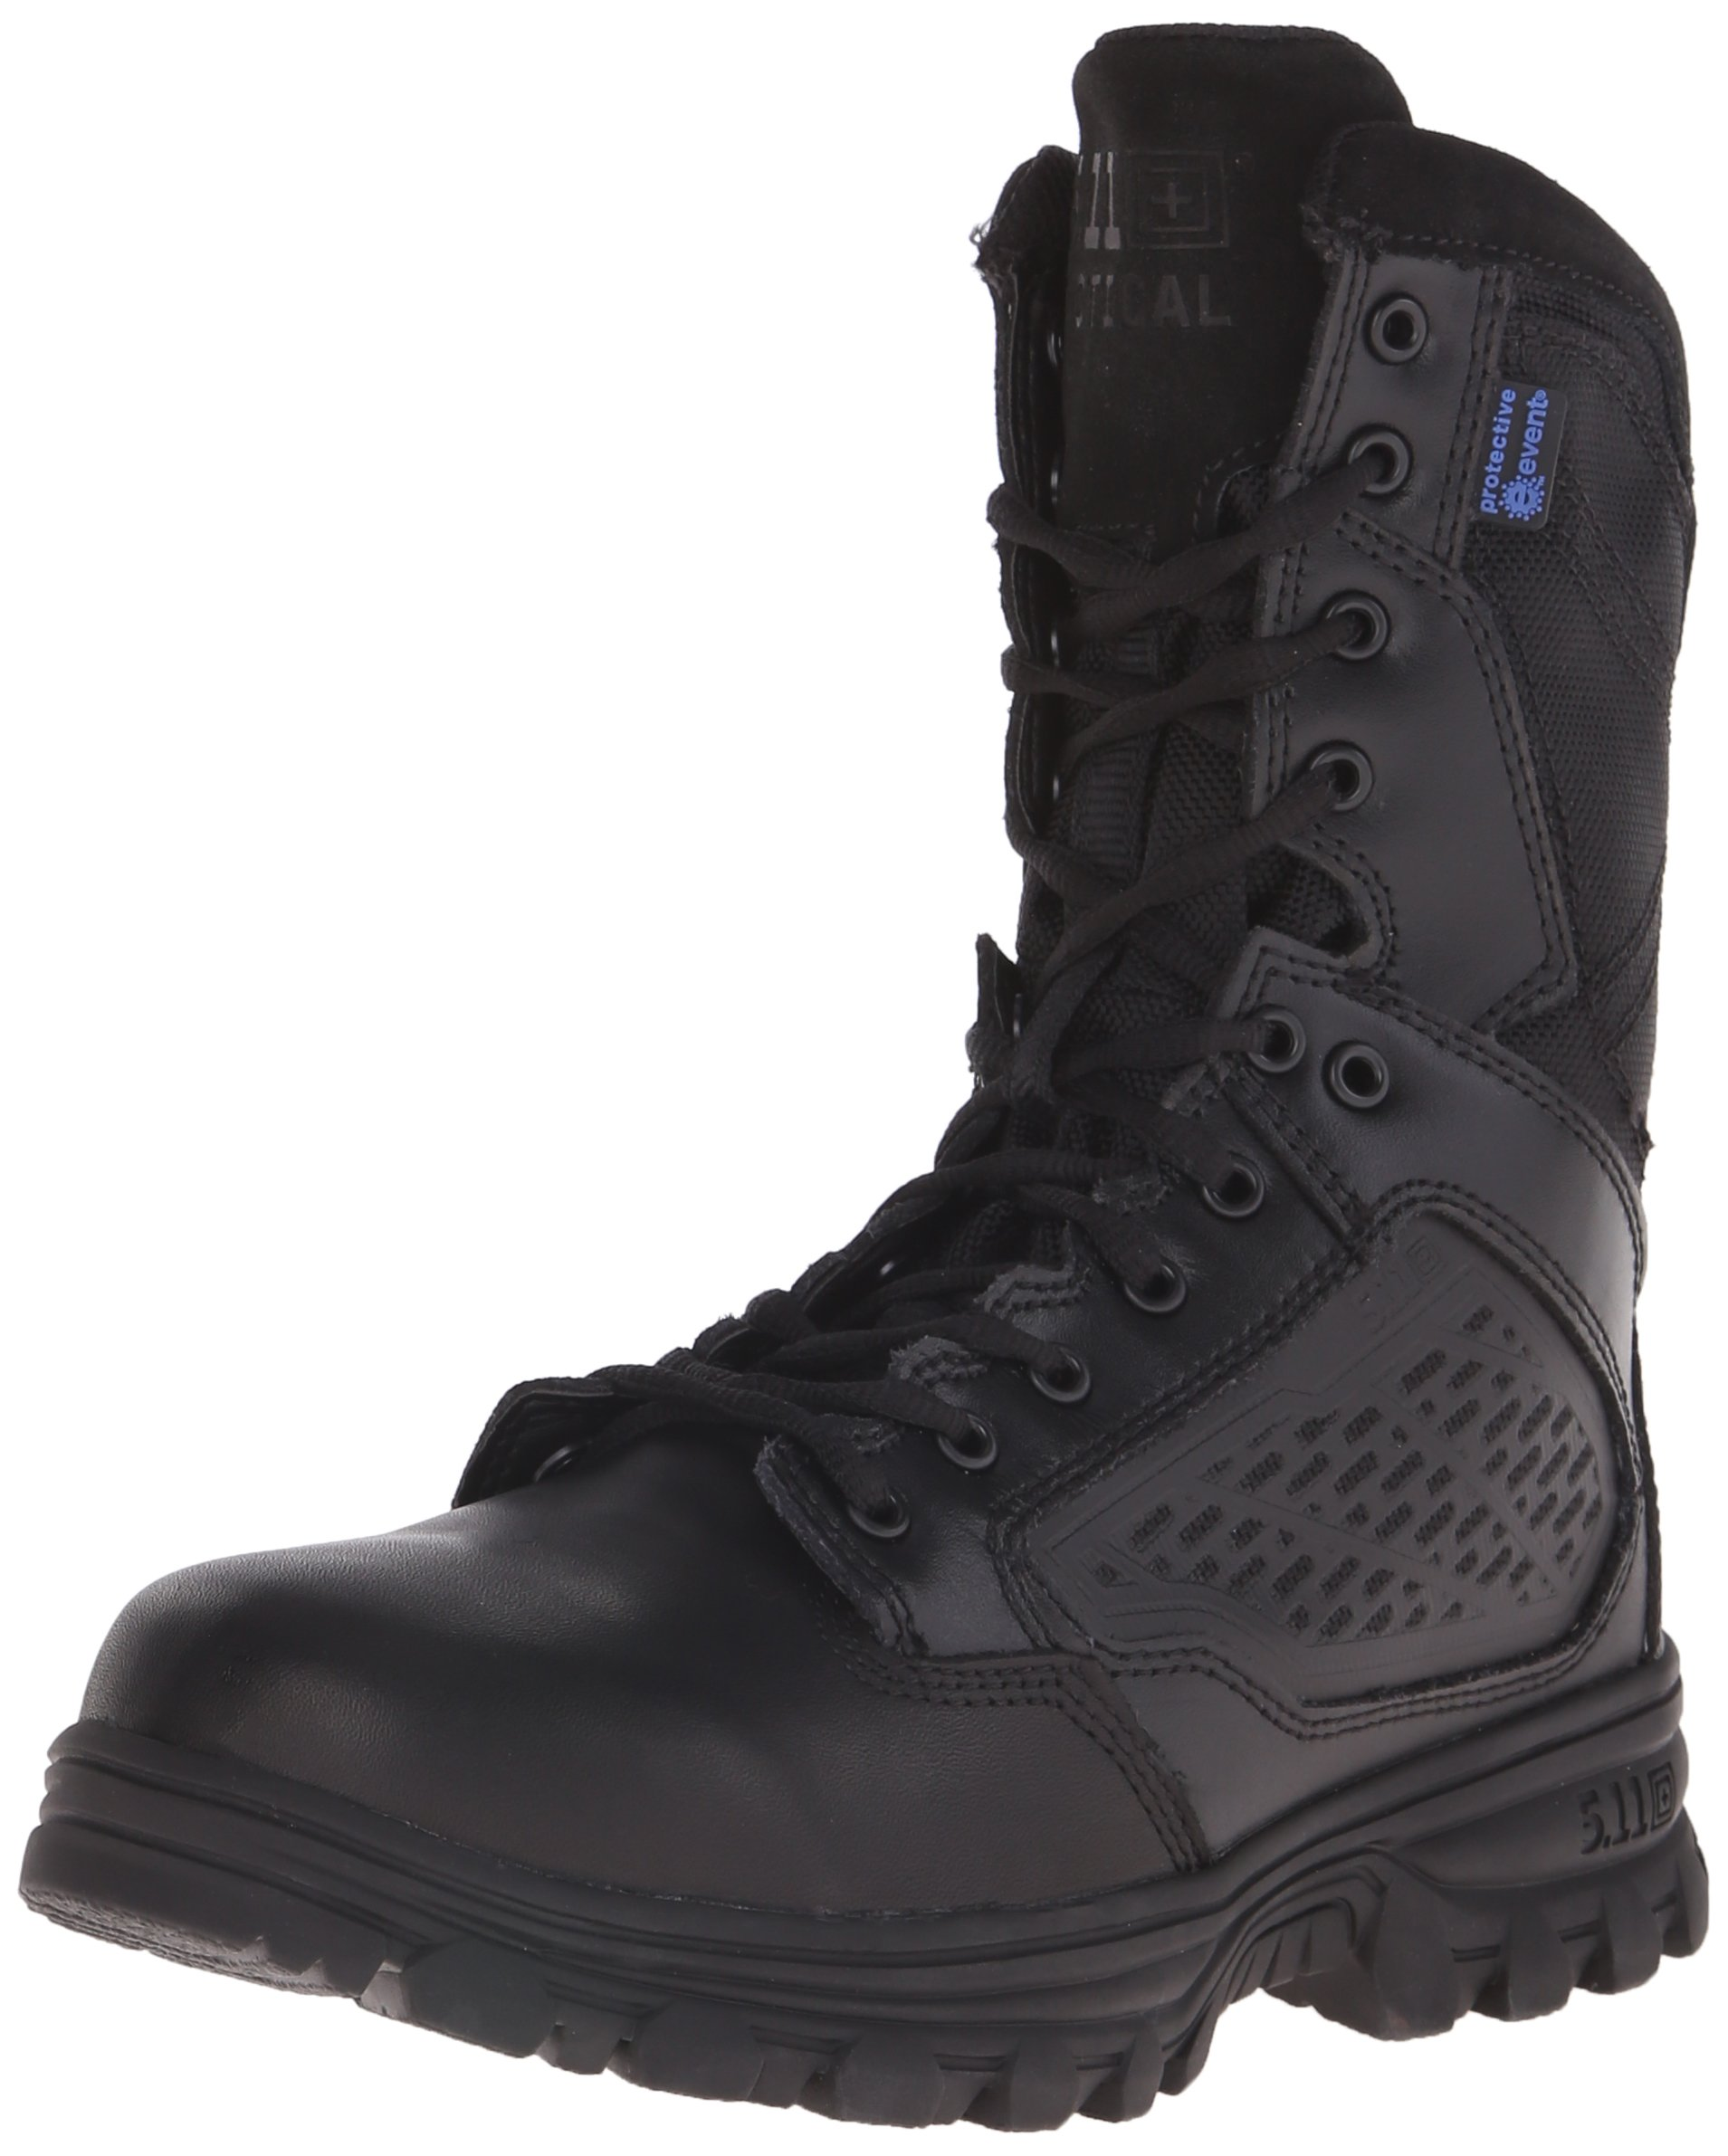 5.11 Tactical EVO 8-Inch Waterproof Boots, Side Zip Access, Full-Length EVA Midsole, Style 12312